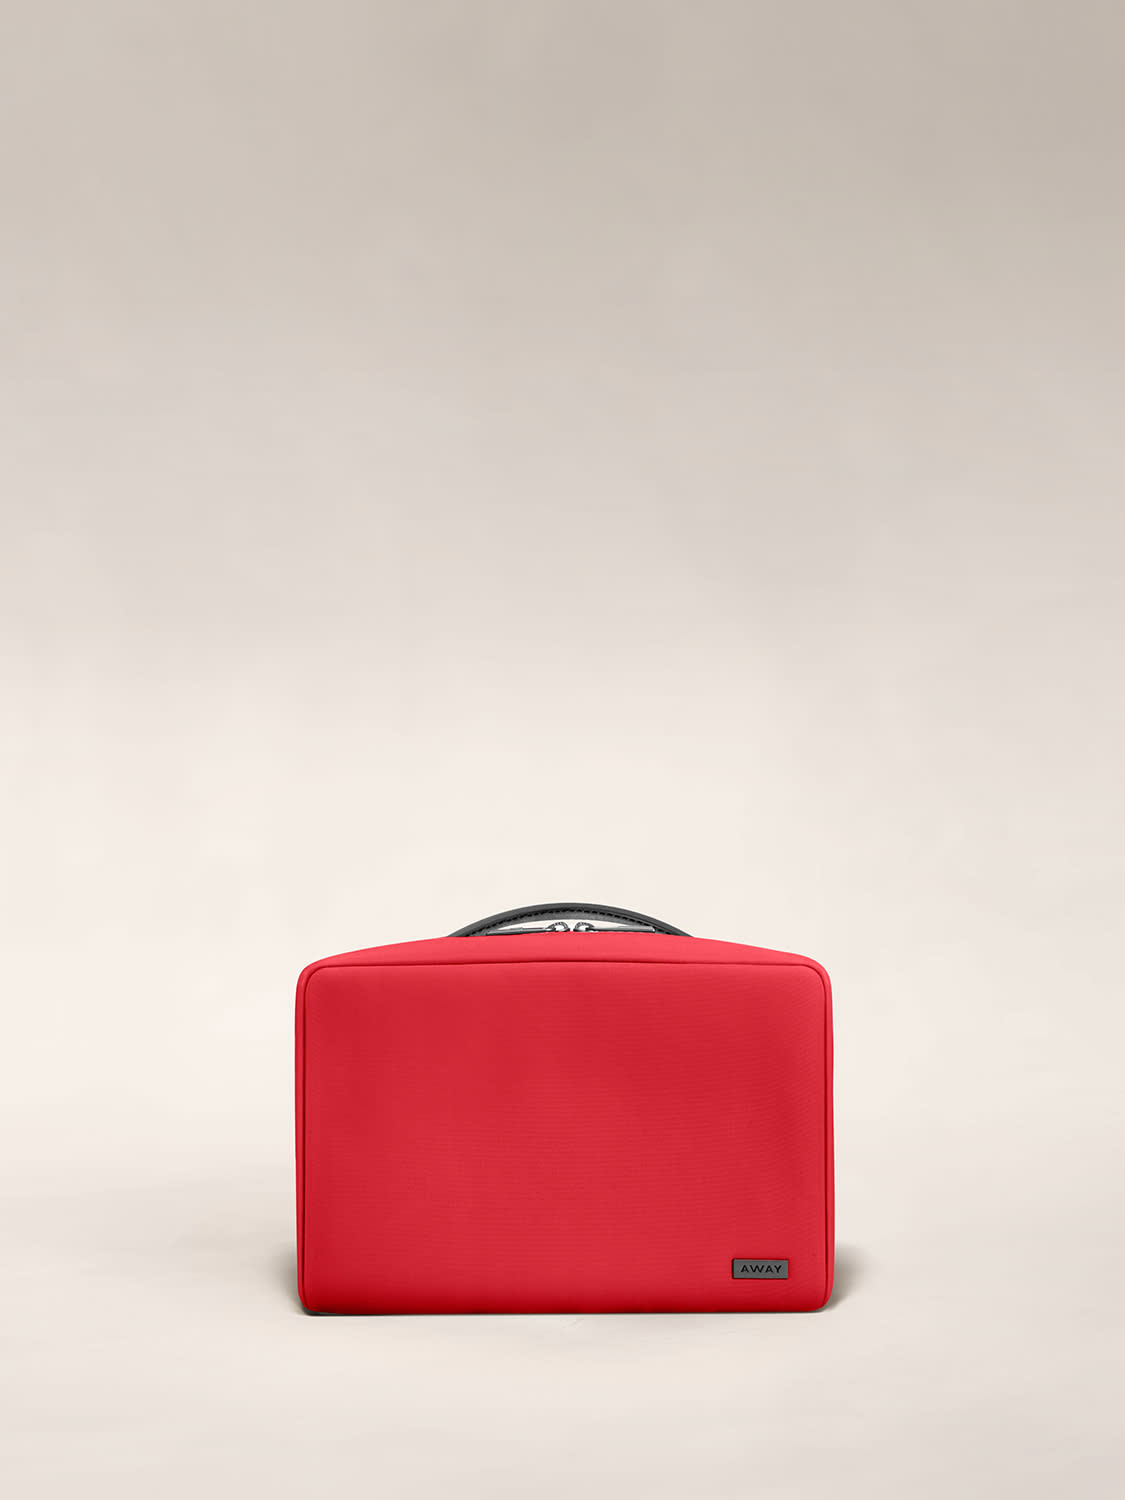 Front view of the small toiletry bag in red cherry